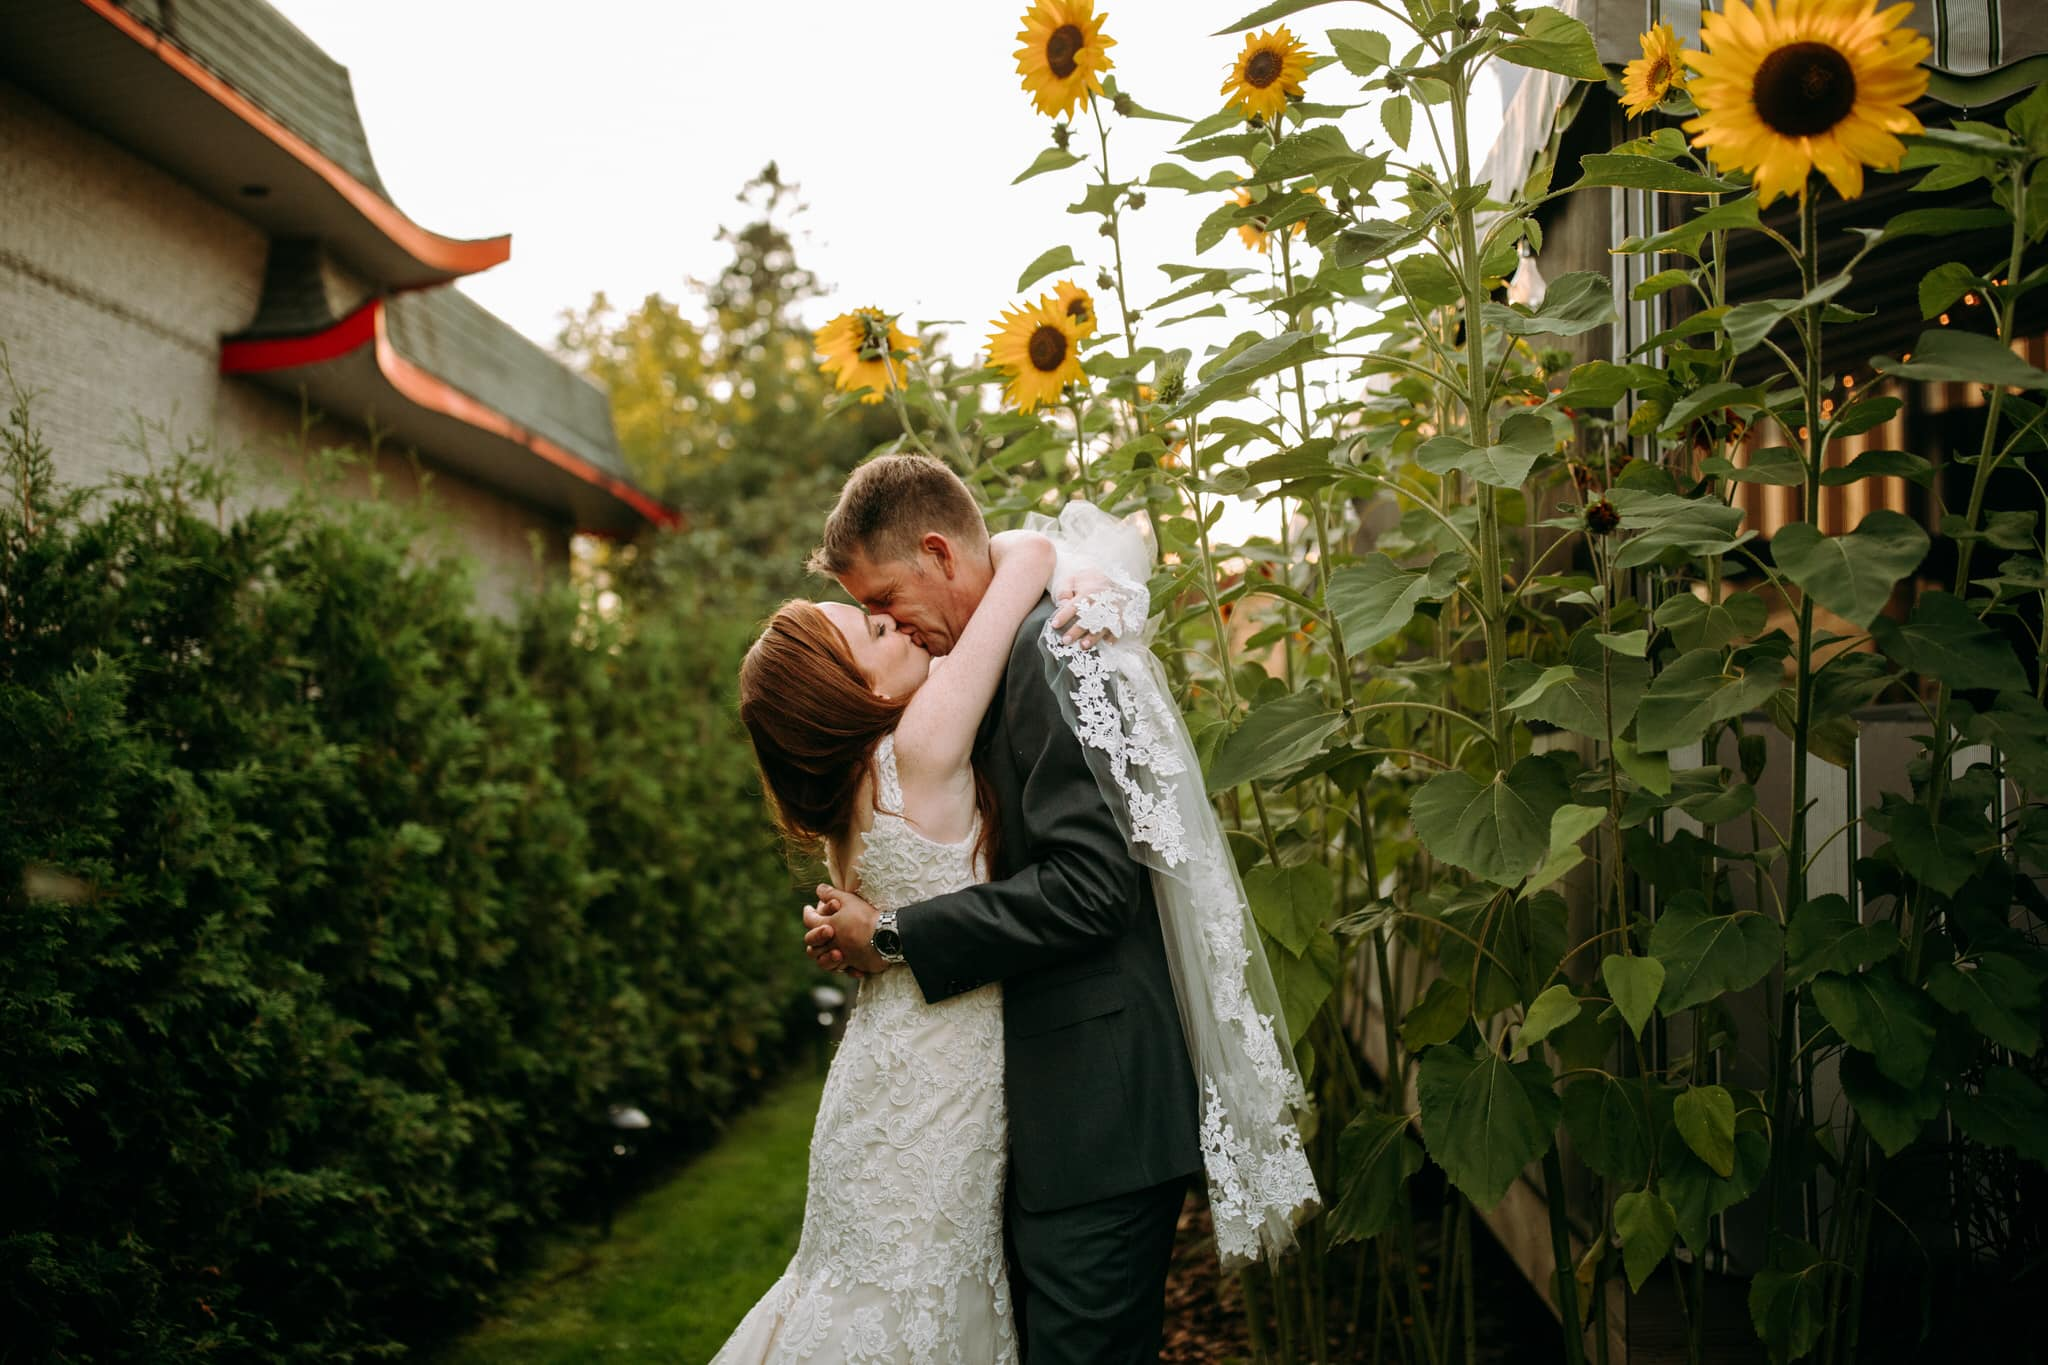 Restaurant wedding at Maison 1890 - bride and groom kissing near sunflowers- Wedding Photographer Brent Calis